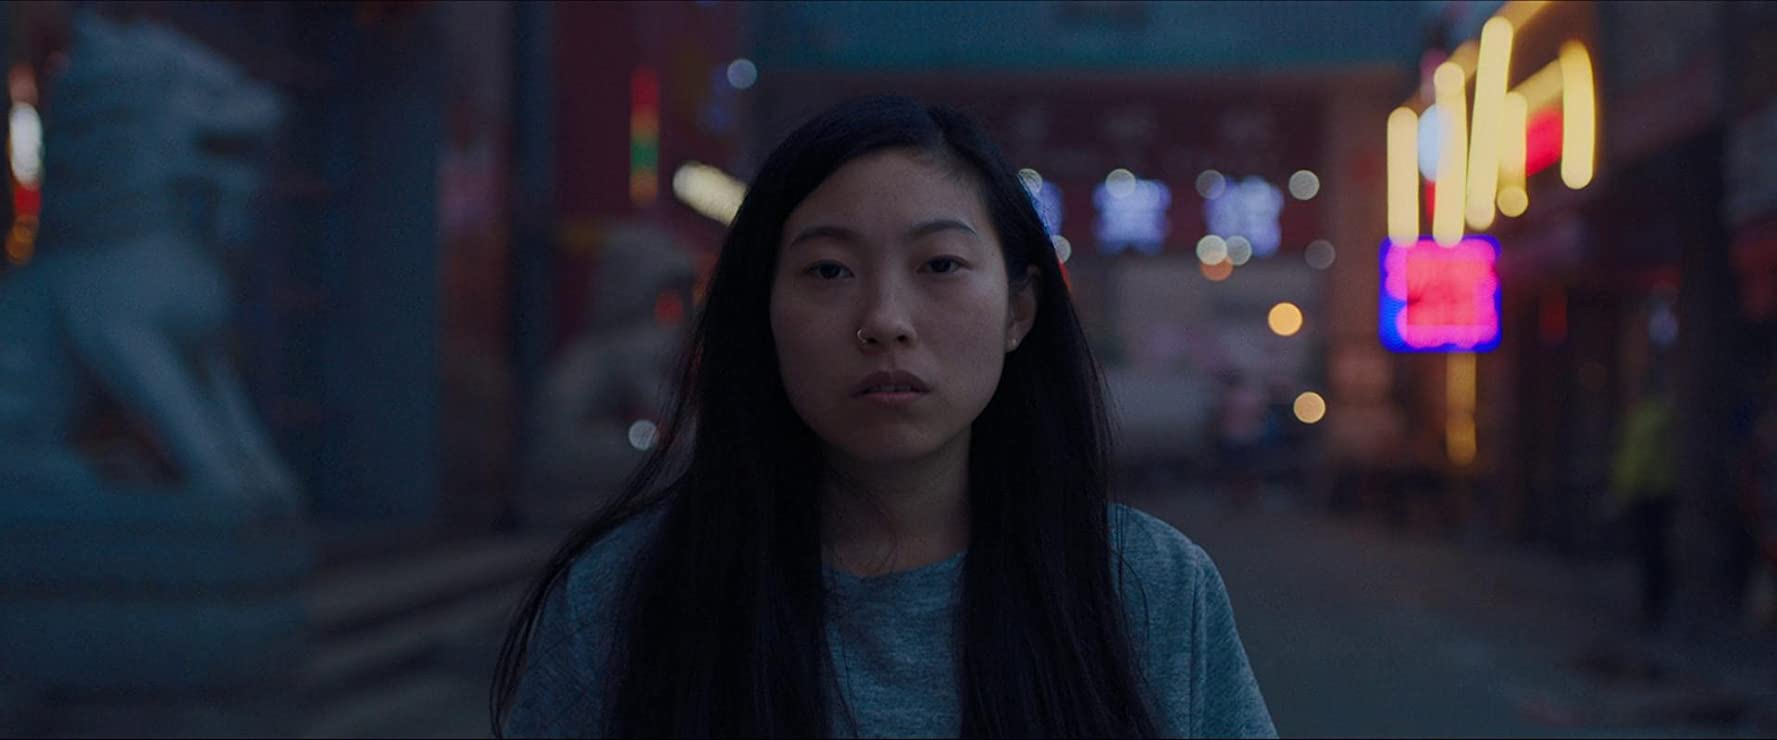 Awkwafina in The Farewell (2019)